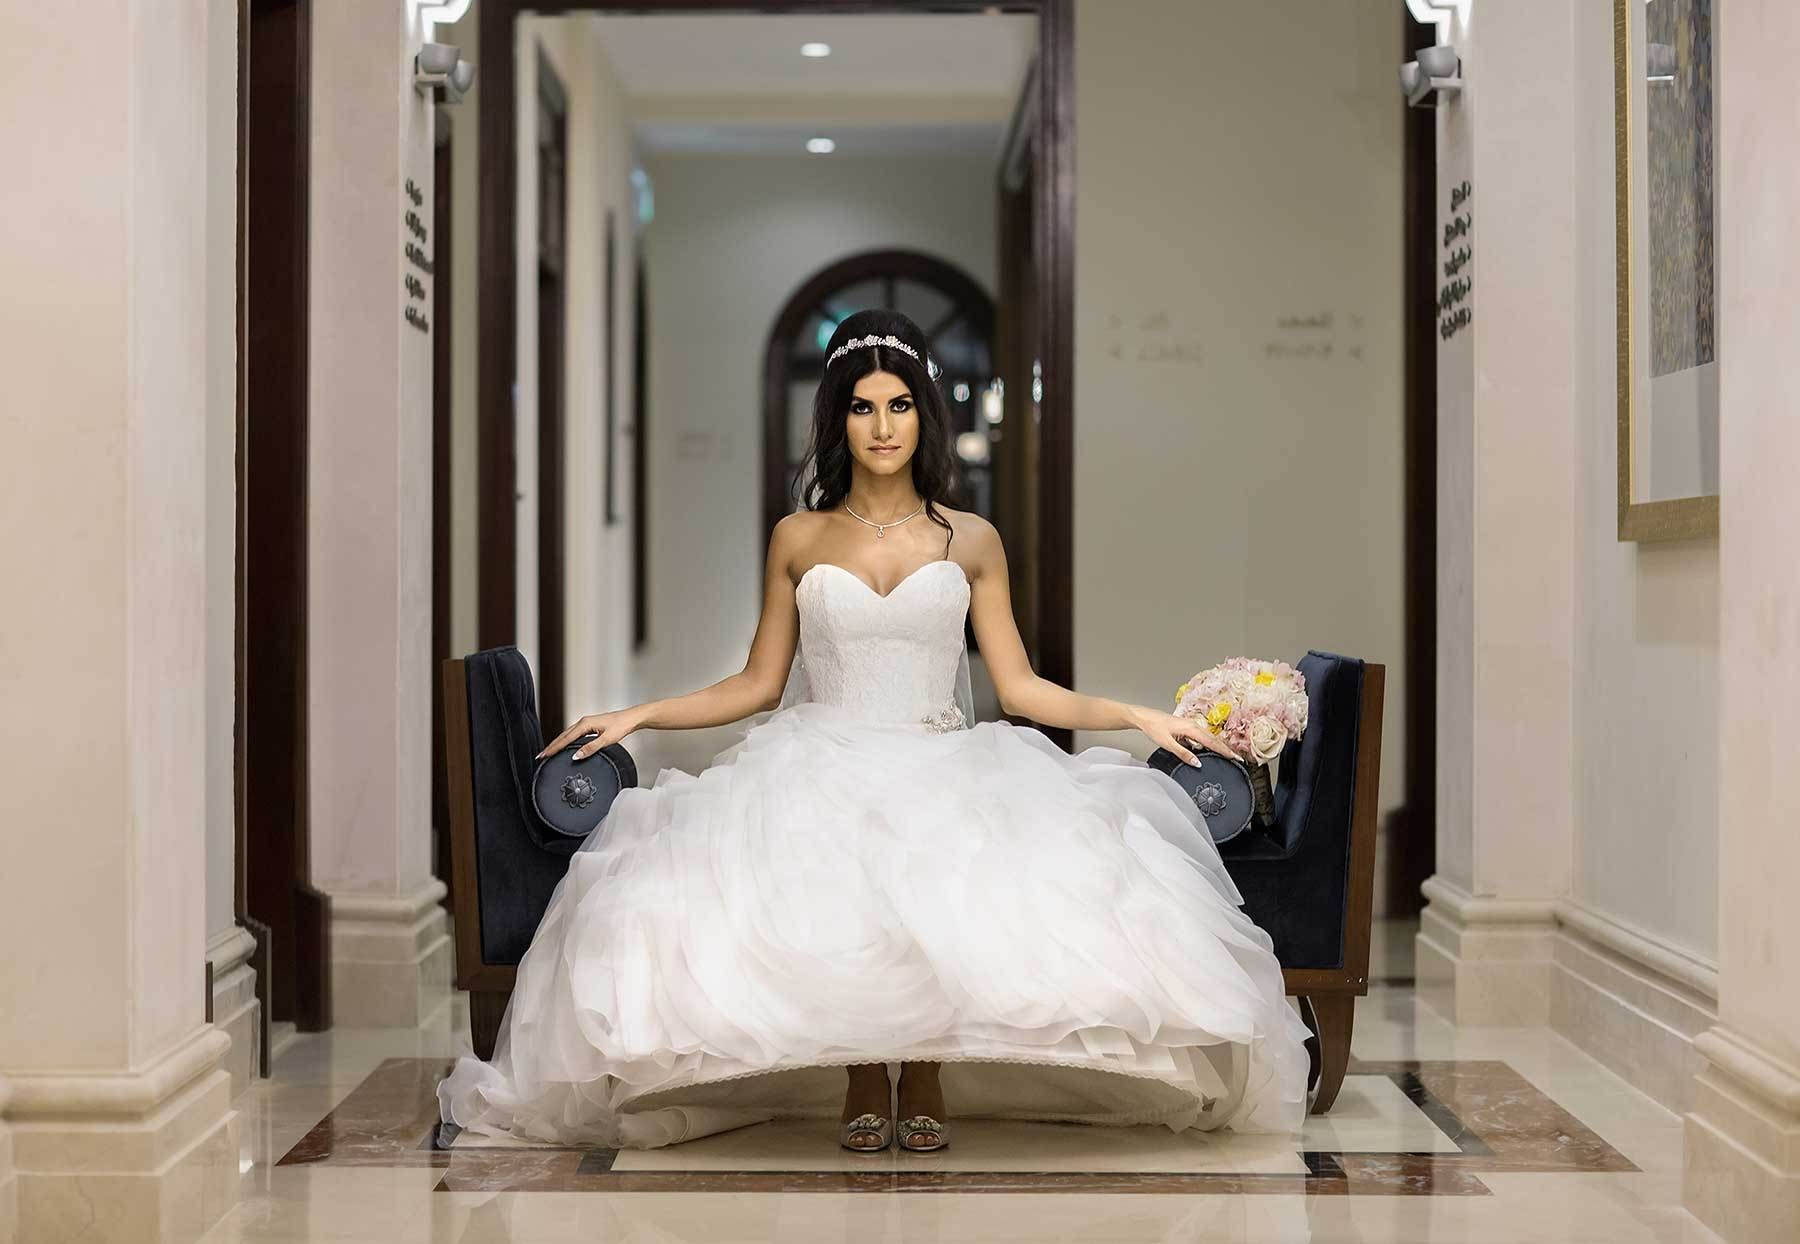 Bride photo shoot in Dubai